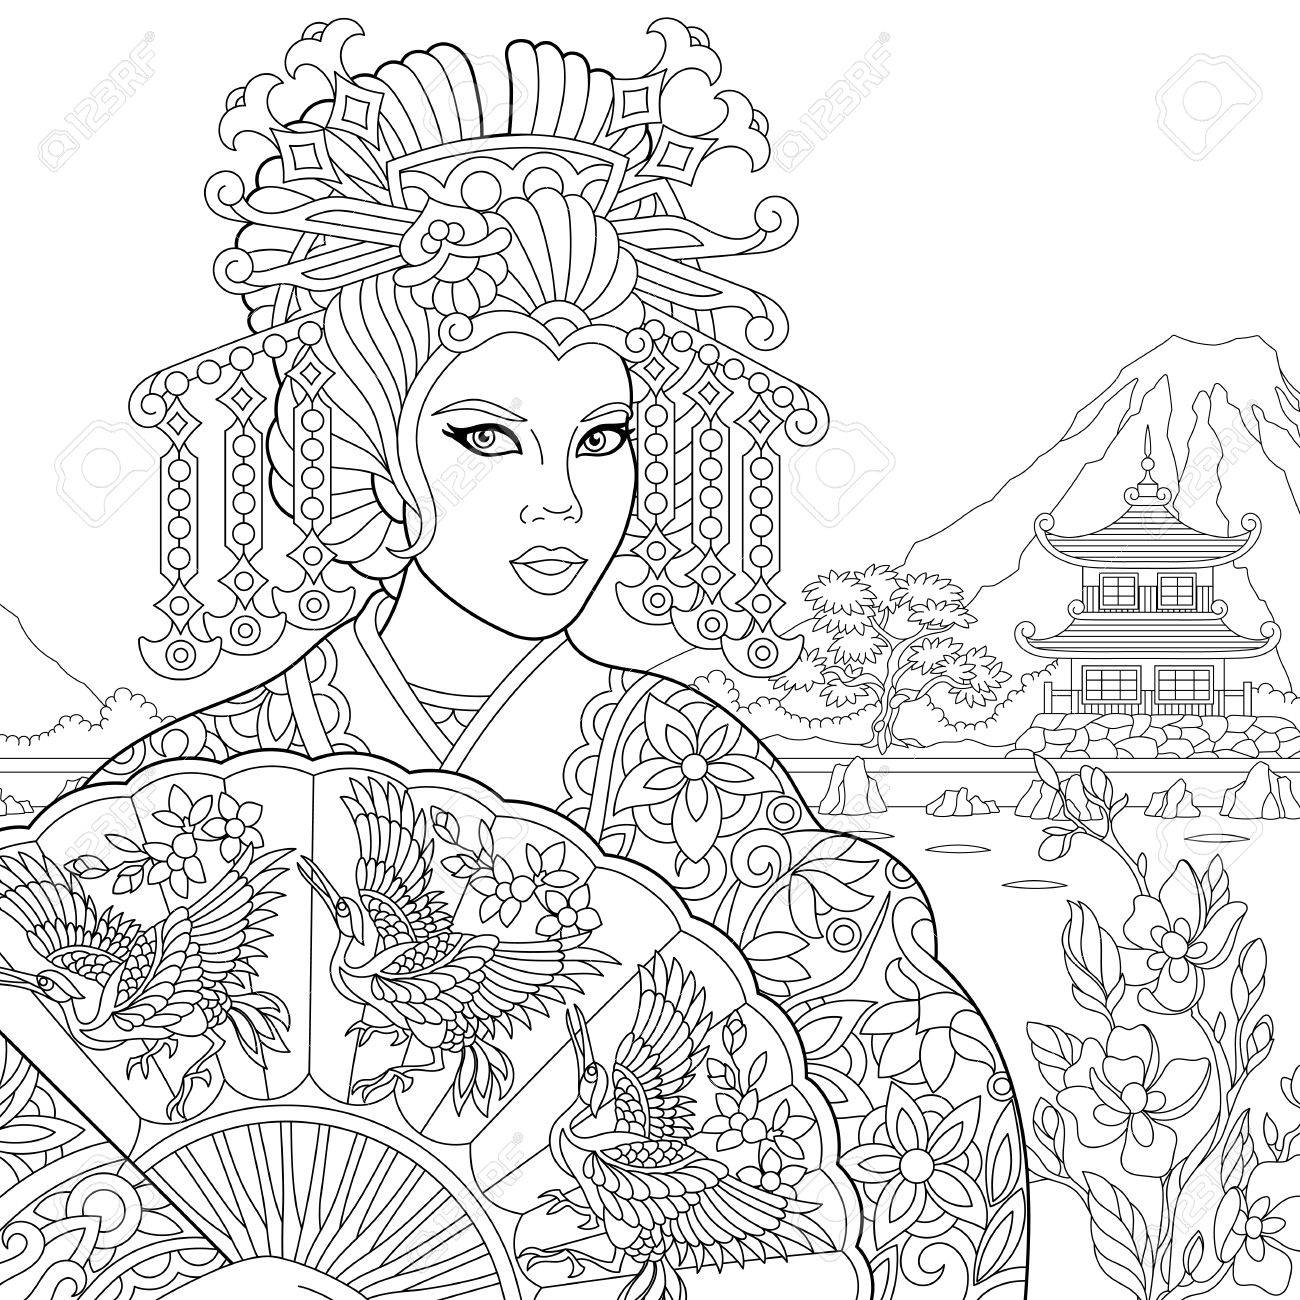 Antistress Coloring Book Page Of Geisha Japanese Dancing Actress Holding Paper Fan With Crane Birds